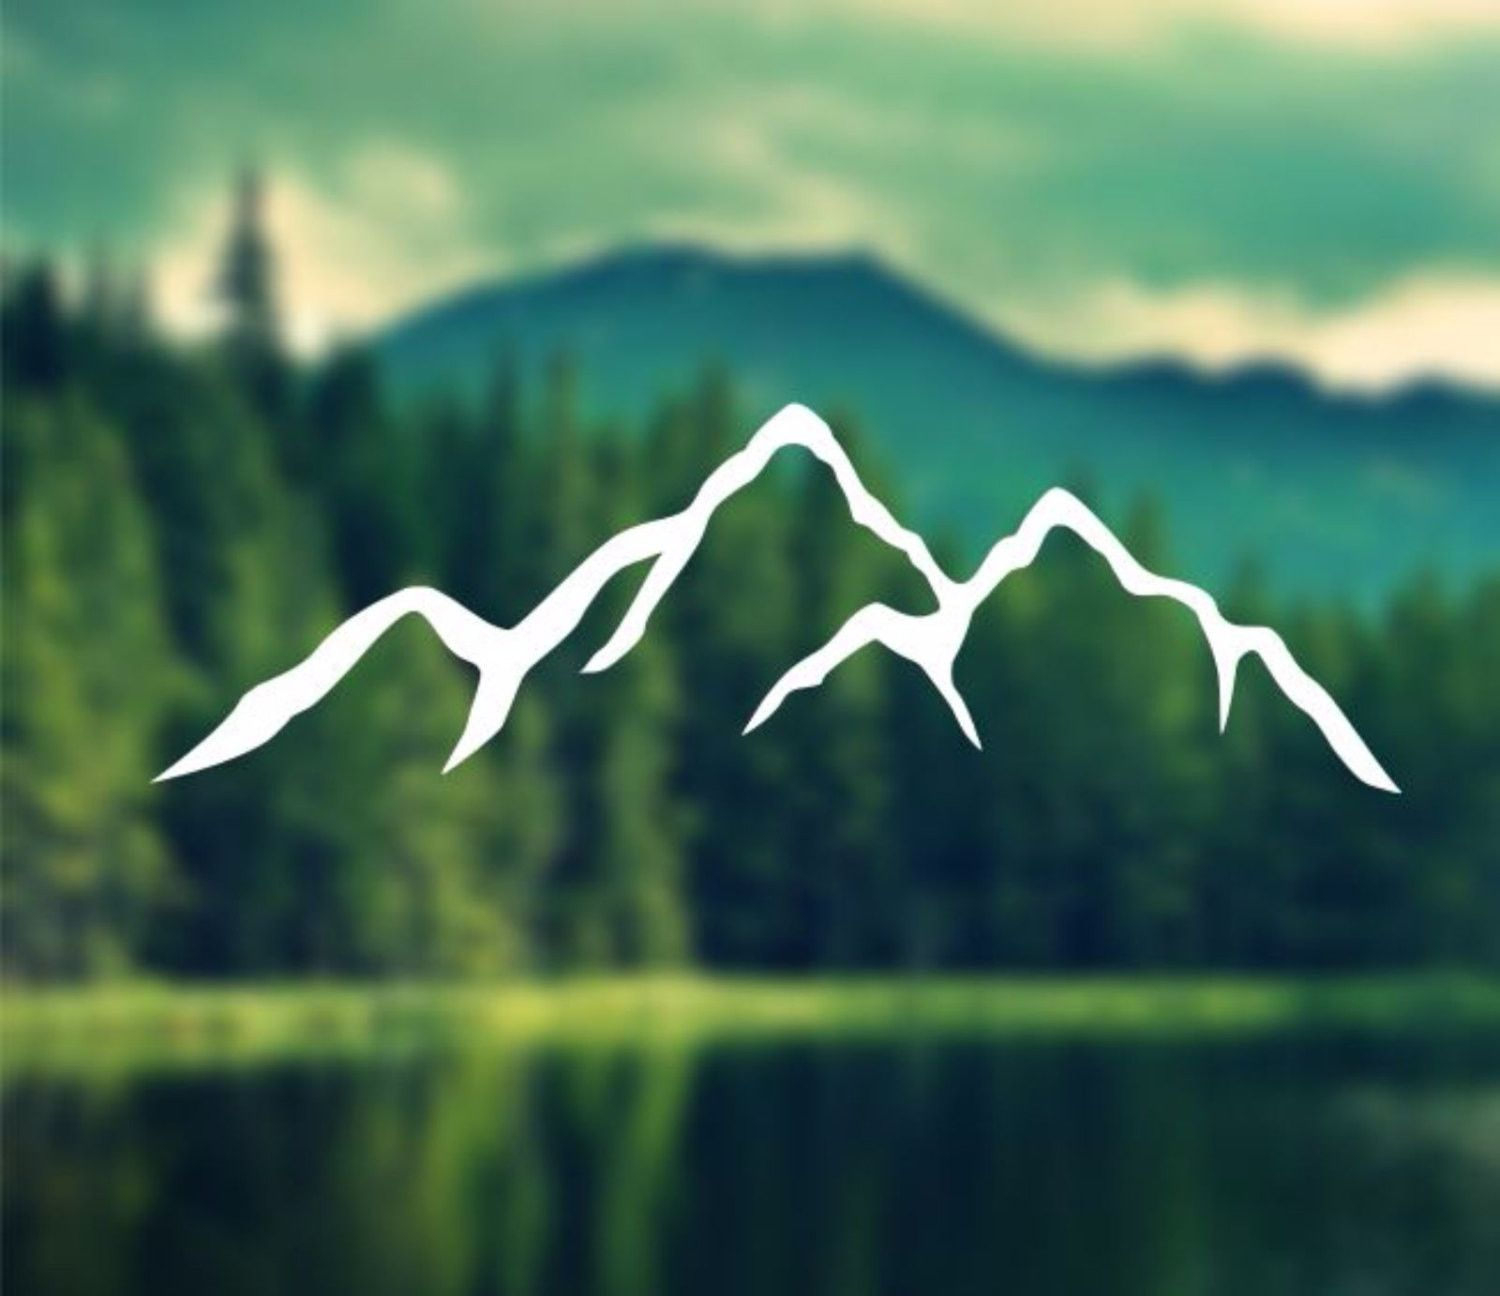 Decal Mountains Silhouette Car Decal Laptop Decal